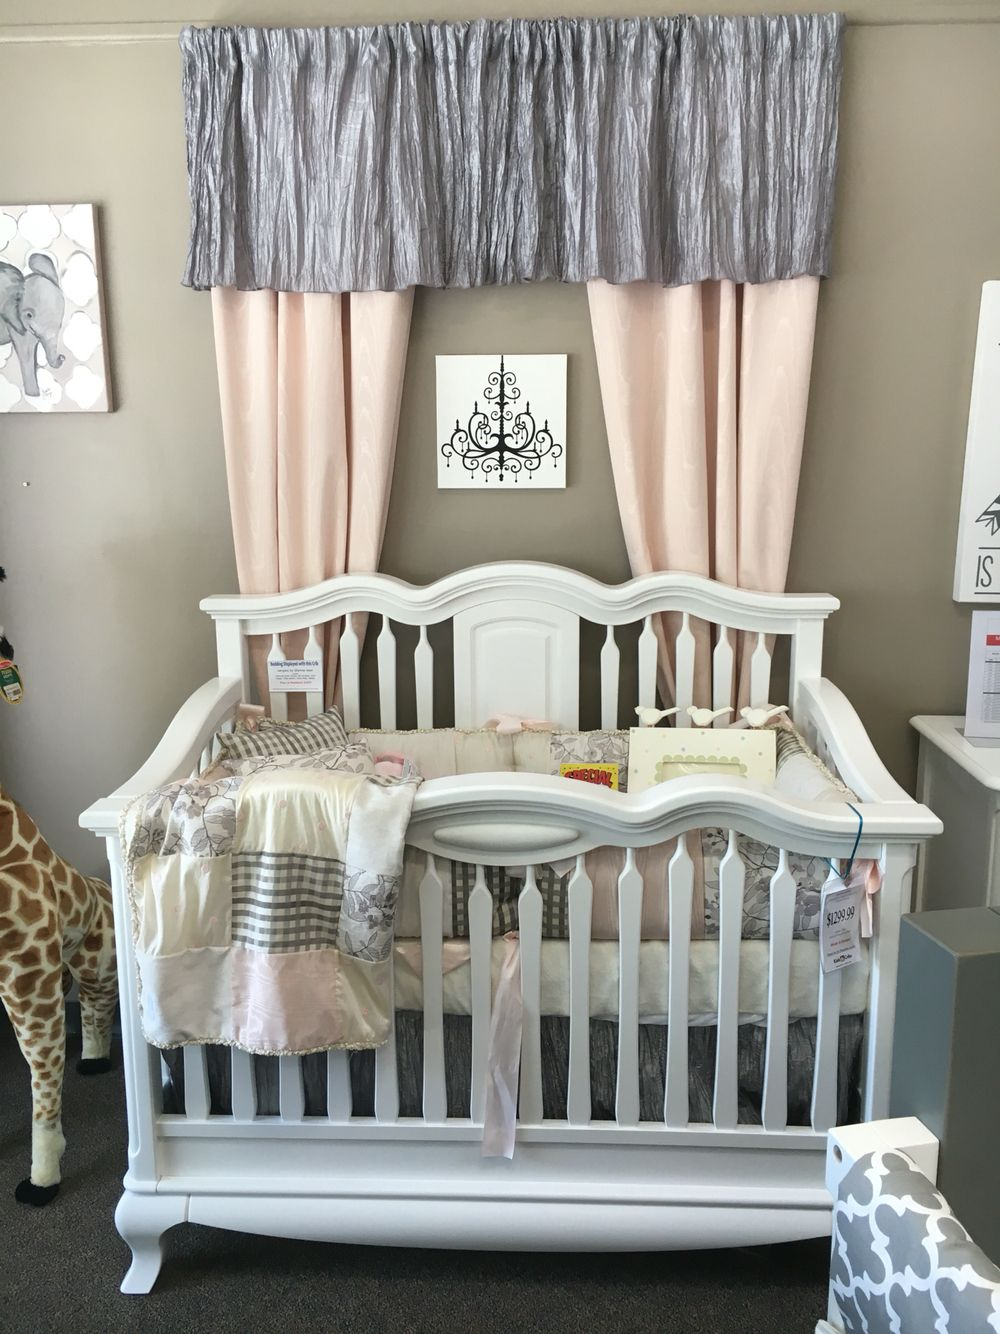 new designs expo cribs romina abc crib spotted at kids